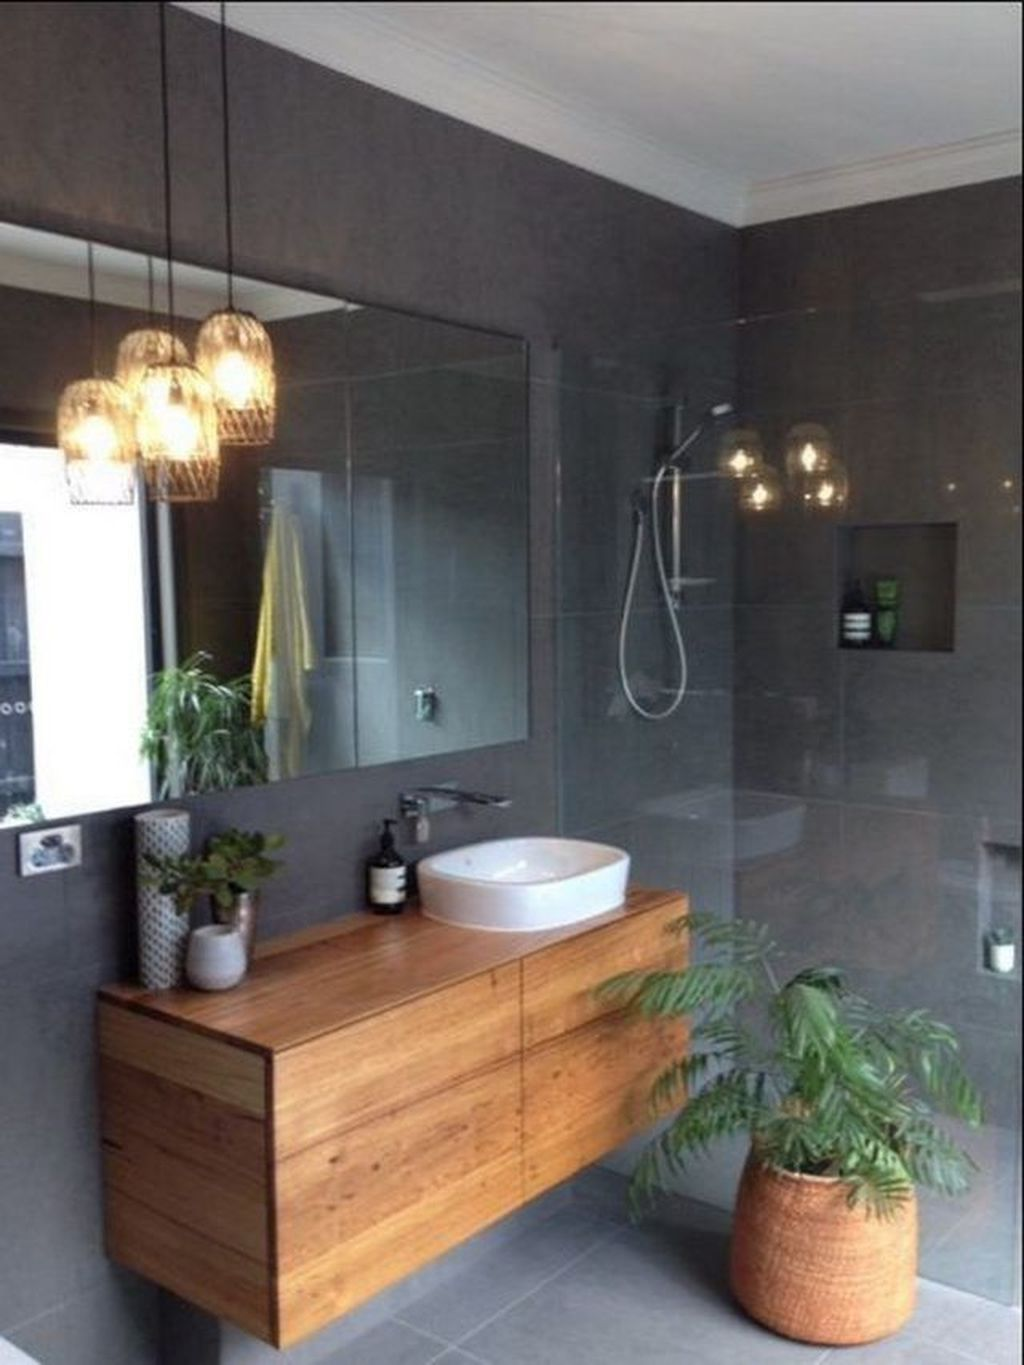 Inspiring Bathroom Interior Design Ideas 28